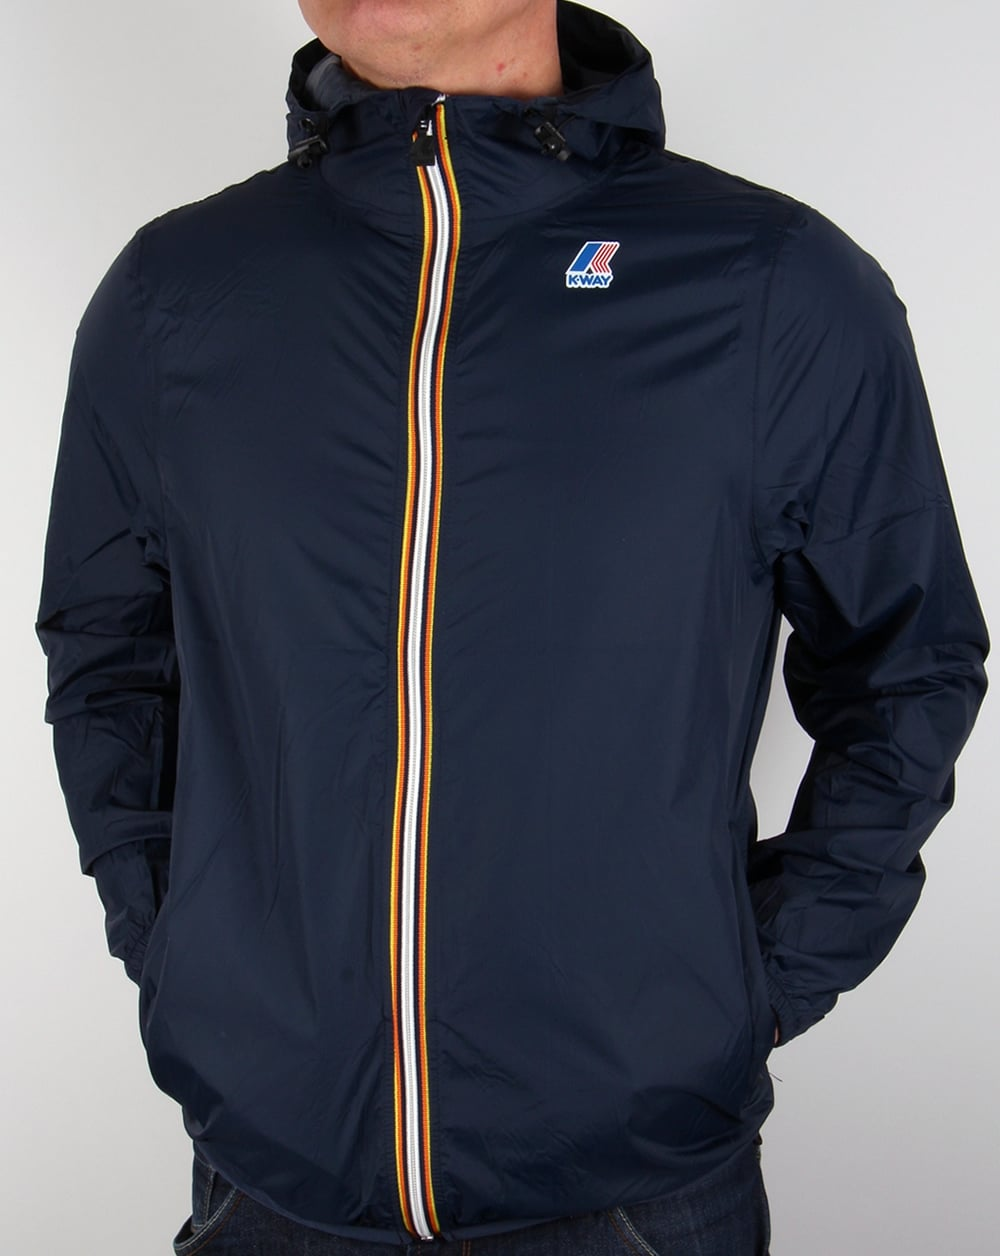 K-way Claude 3.0 Rainproof Jacket Navy, windbreaker,coat,pac a mac ...